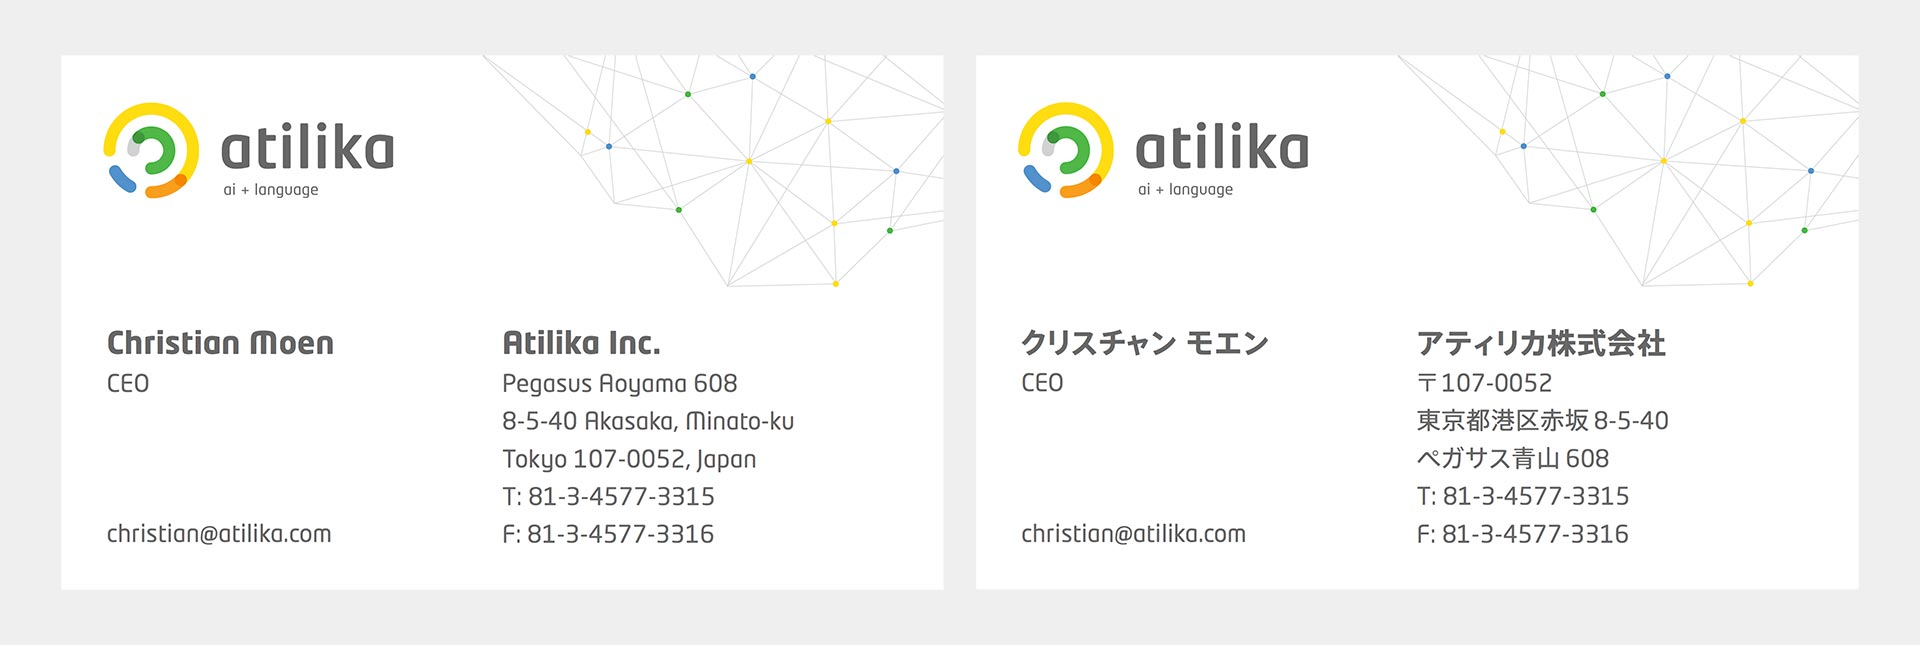 Atilika Tokyo Japan - ai artificial intelligence & language processing - Business Card Template